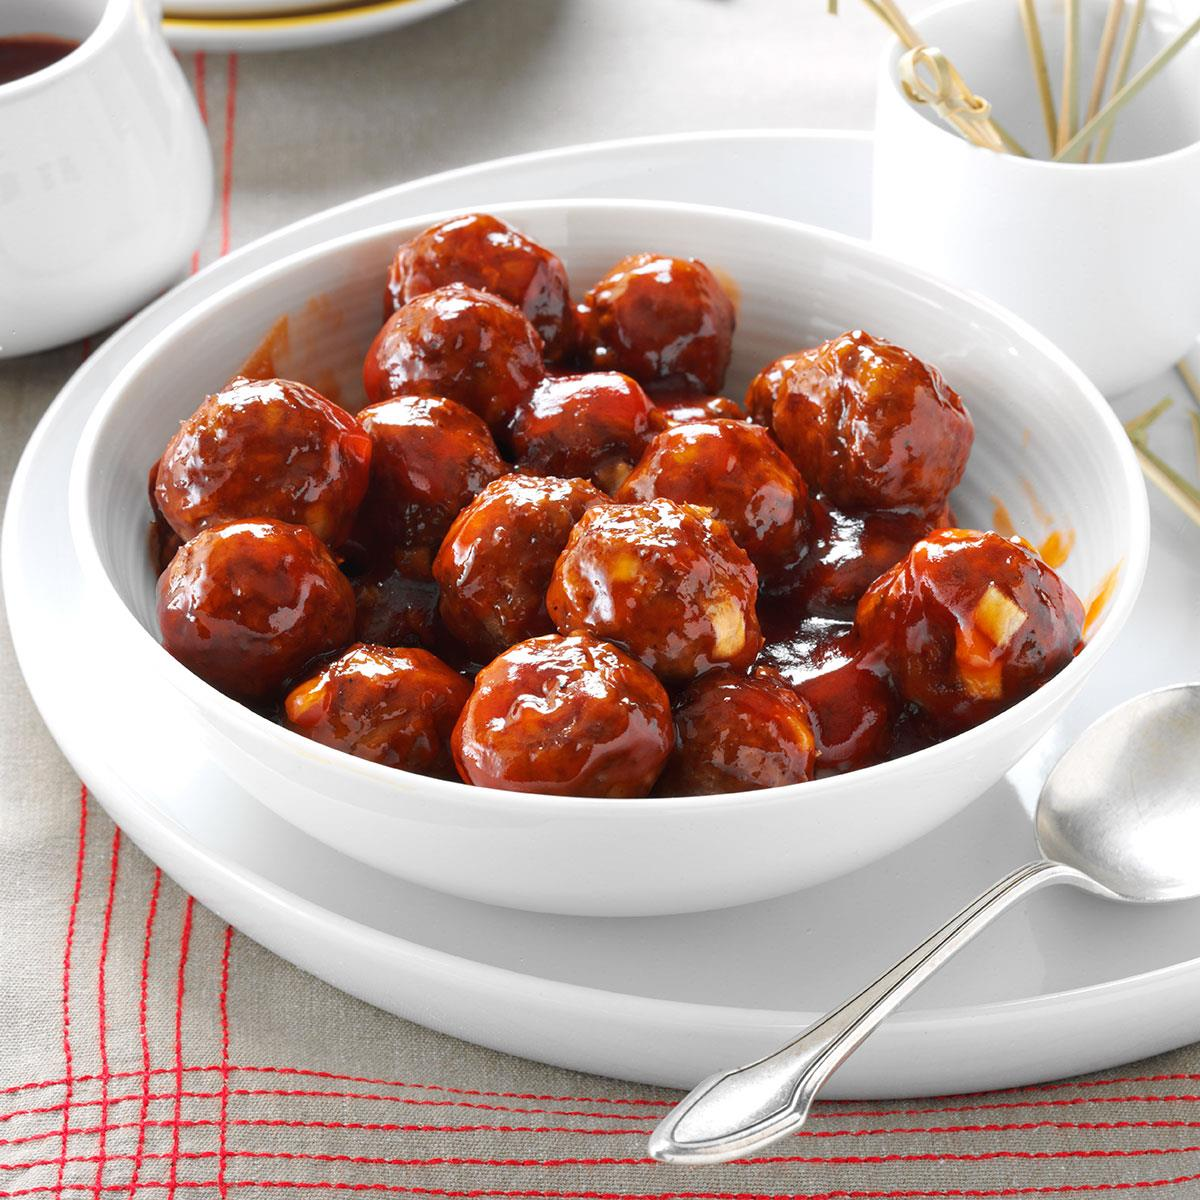 Meatballs in Barbecue Sauce image